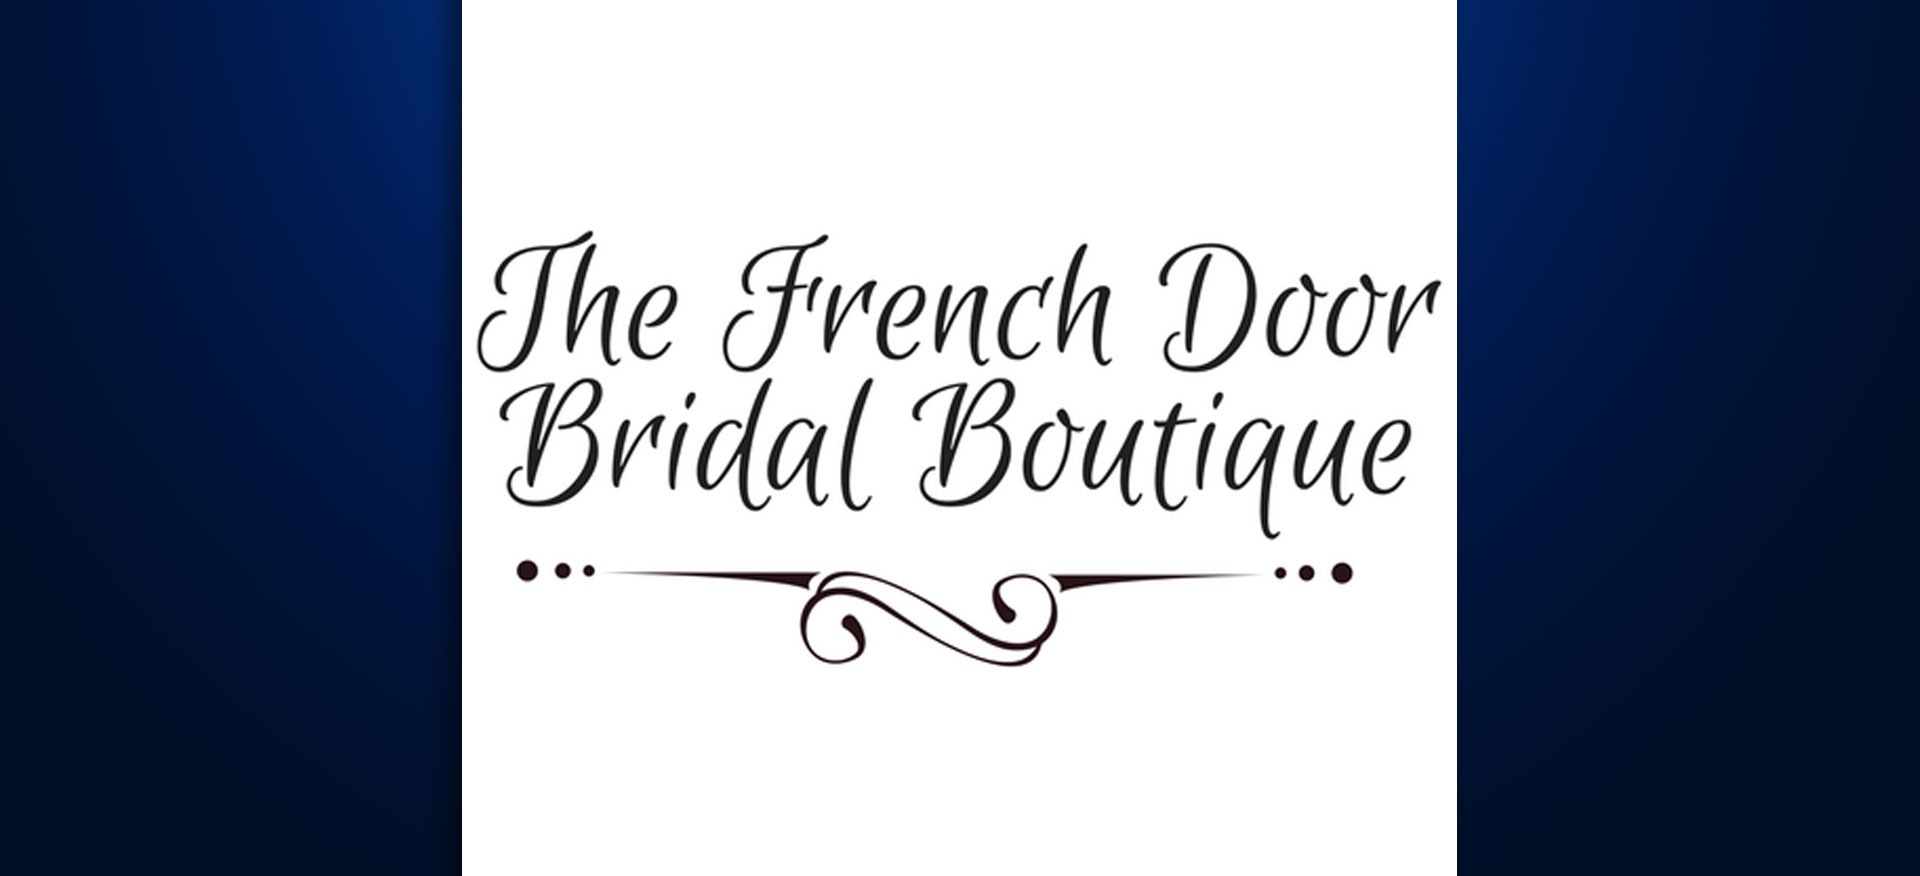 Popular Sioux Falls Bridal Boutique Moving